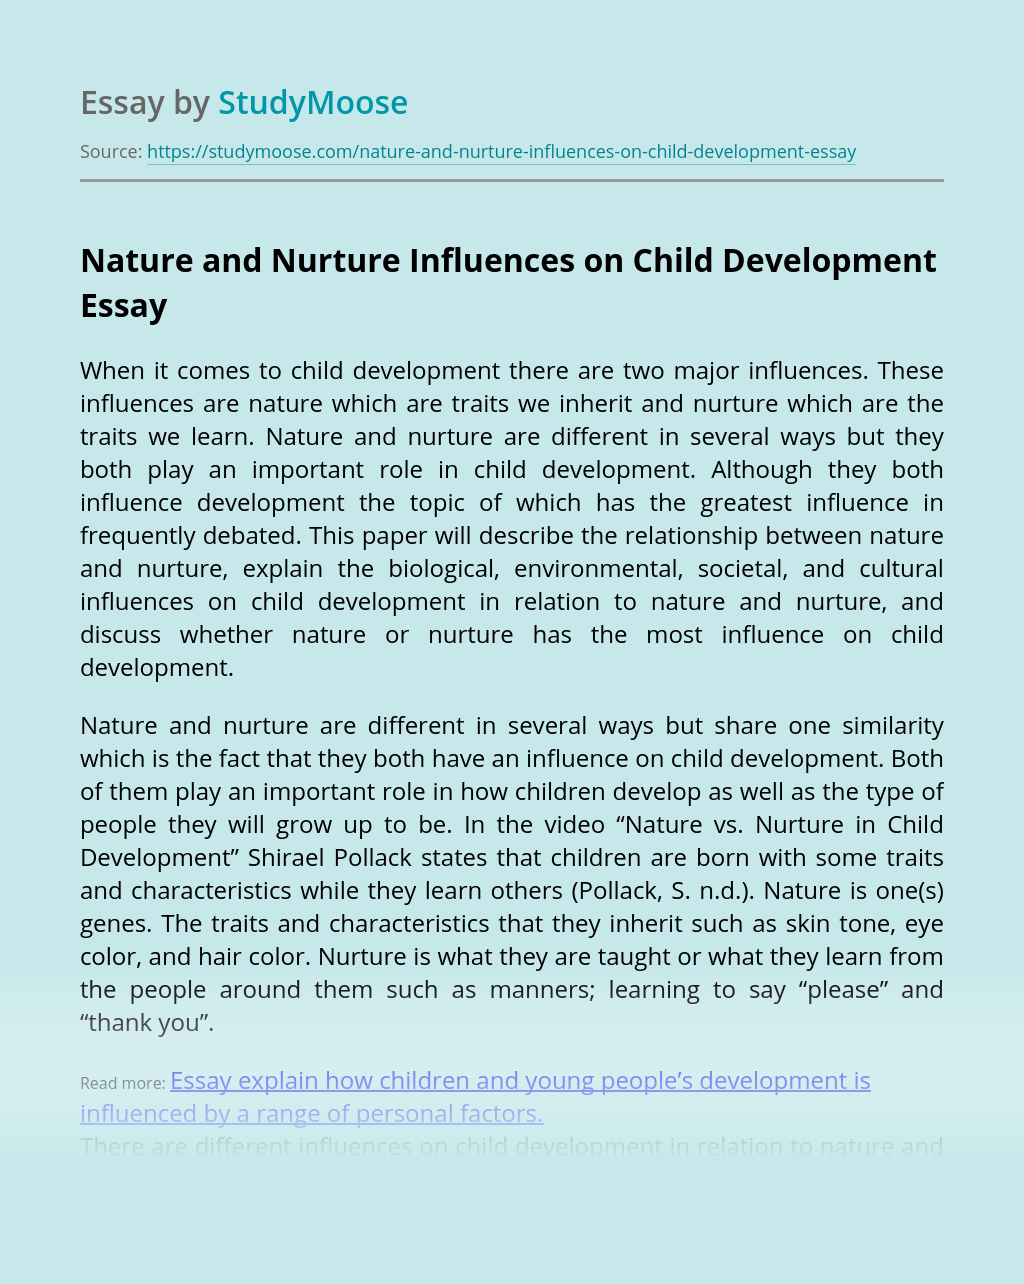 Nature and Nurture Influences on Child Development